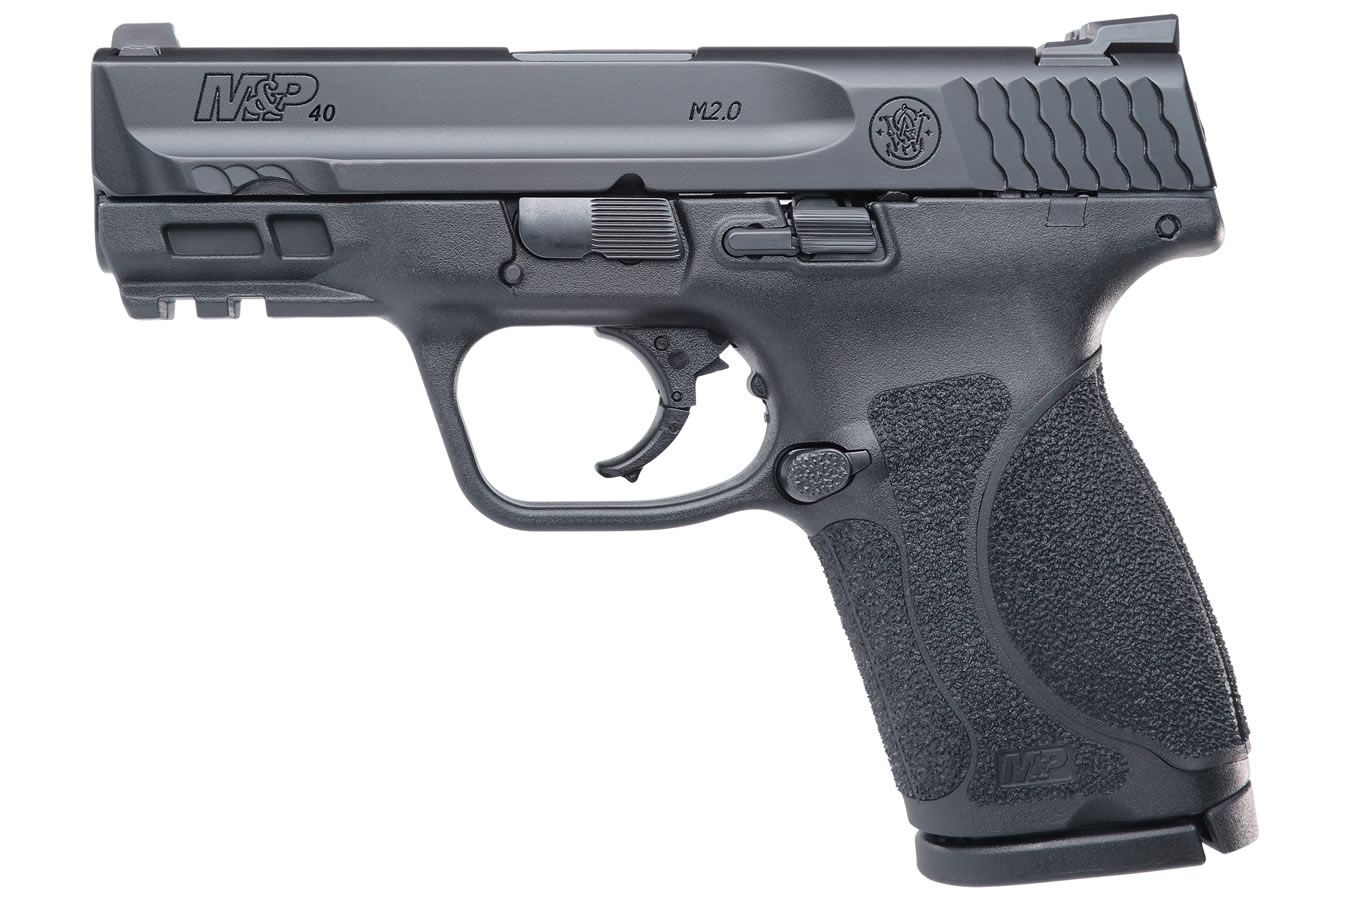 No. 6 Best Selling: SMITH AND WESSON MP40 M2.0 COMPACT 40SW WITH 3.6 INCH BARREL